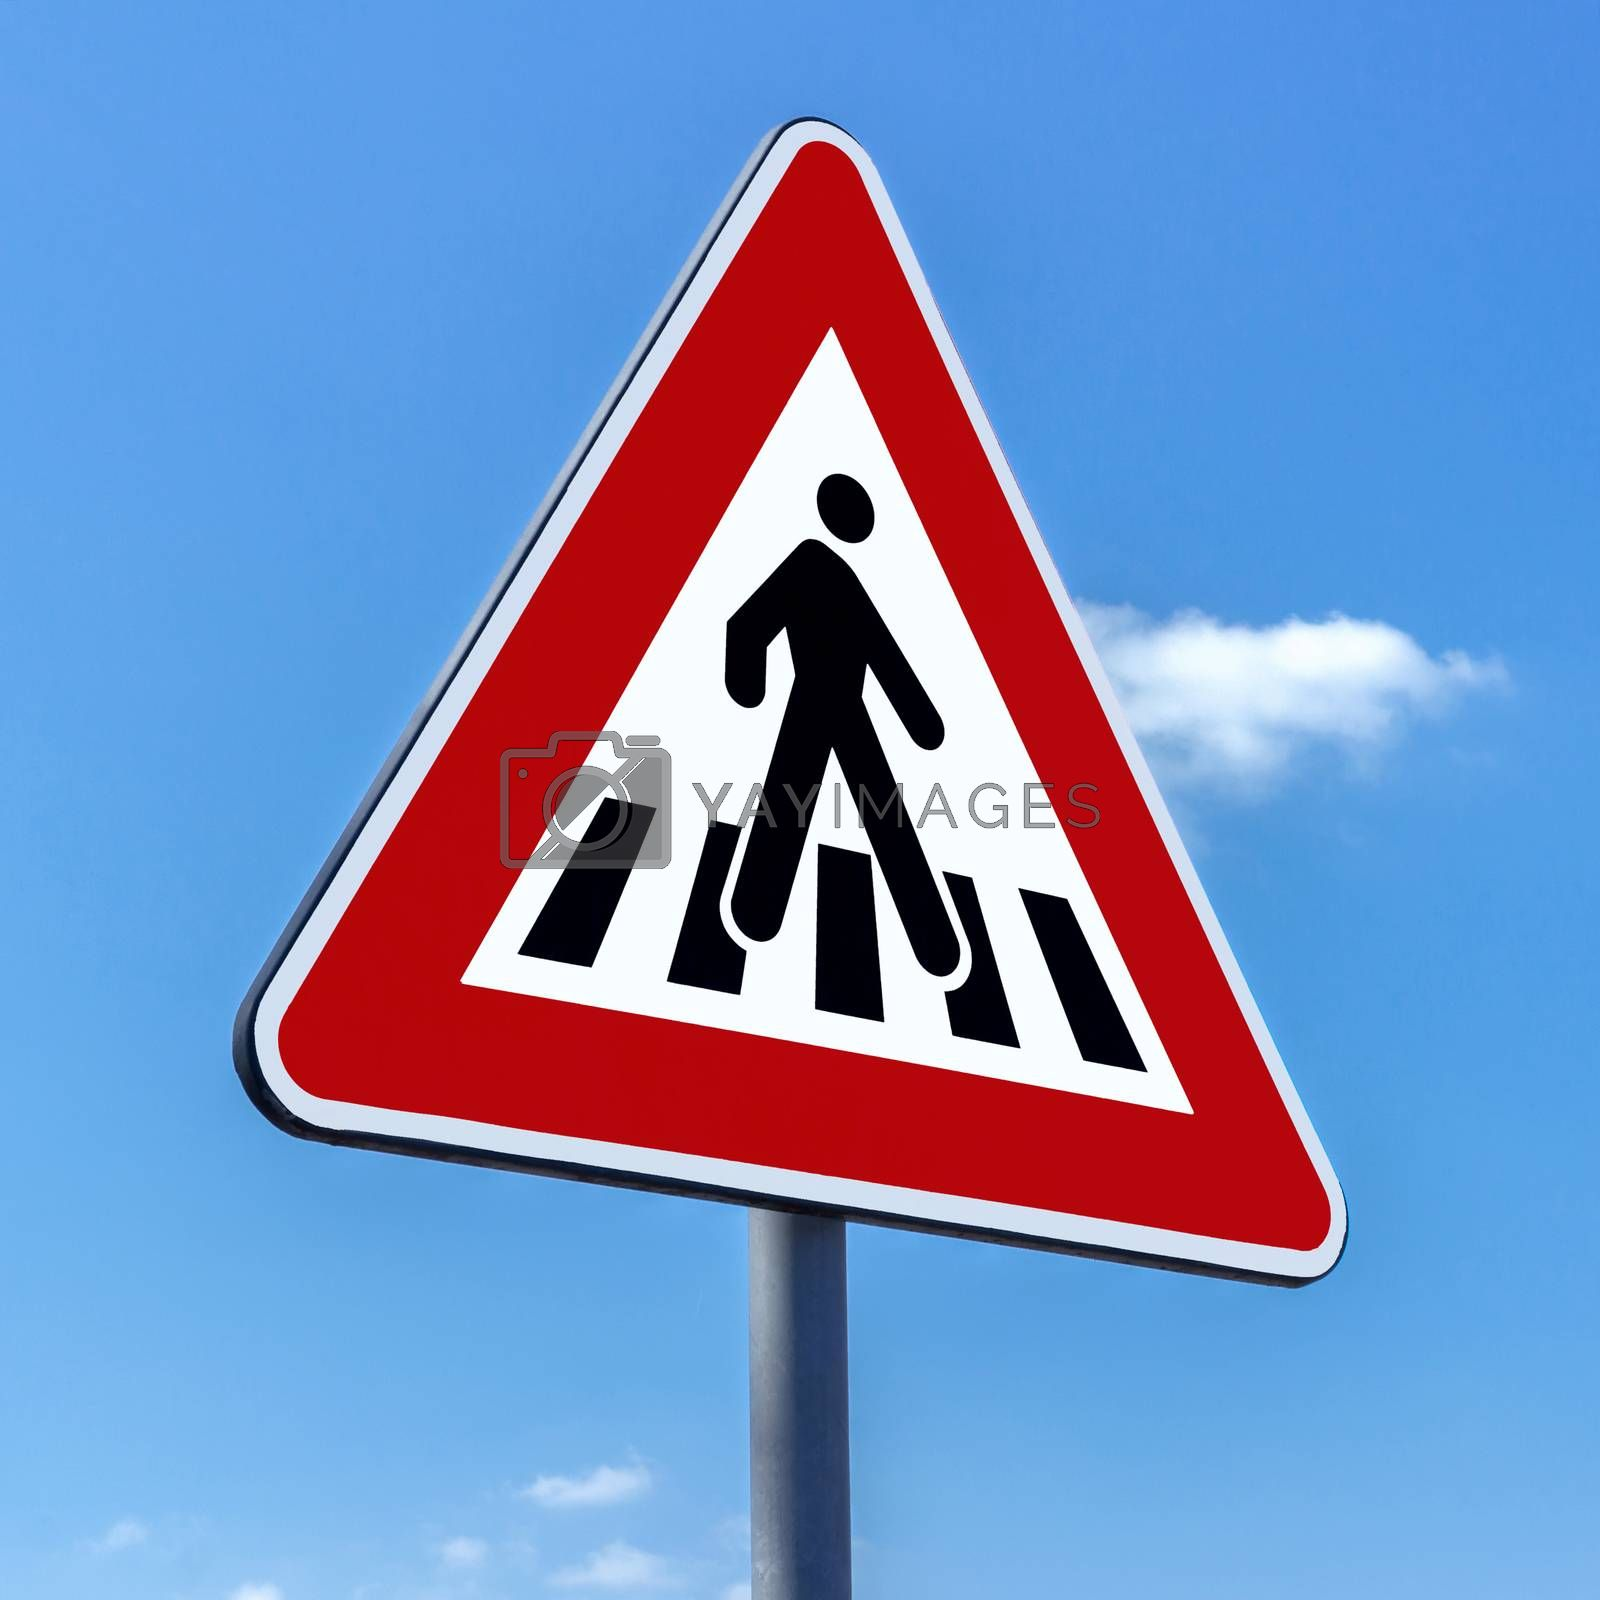 Pedestrian crossing sign against blue sky background